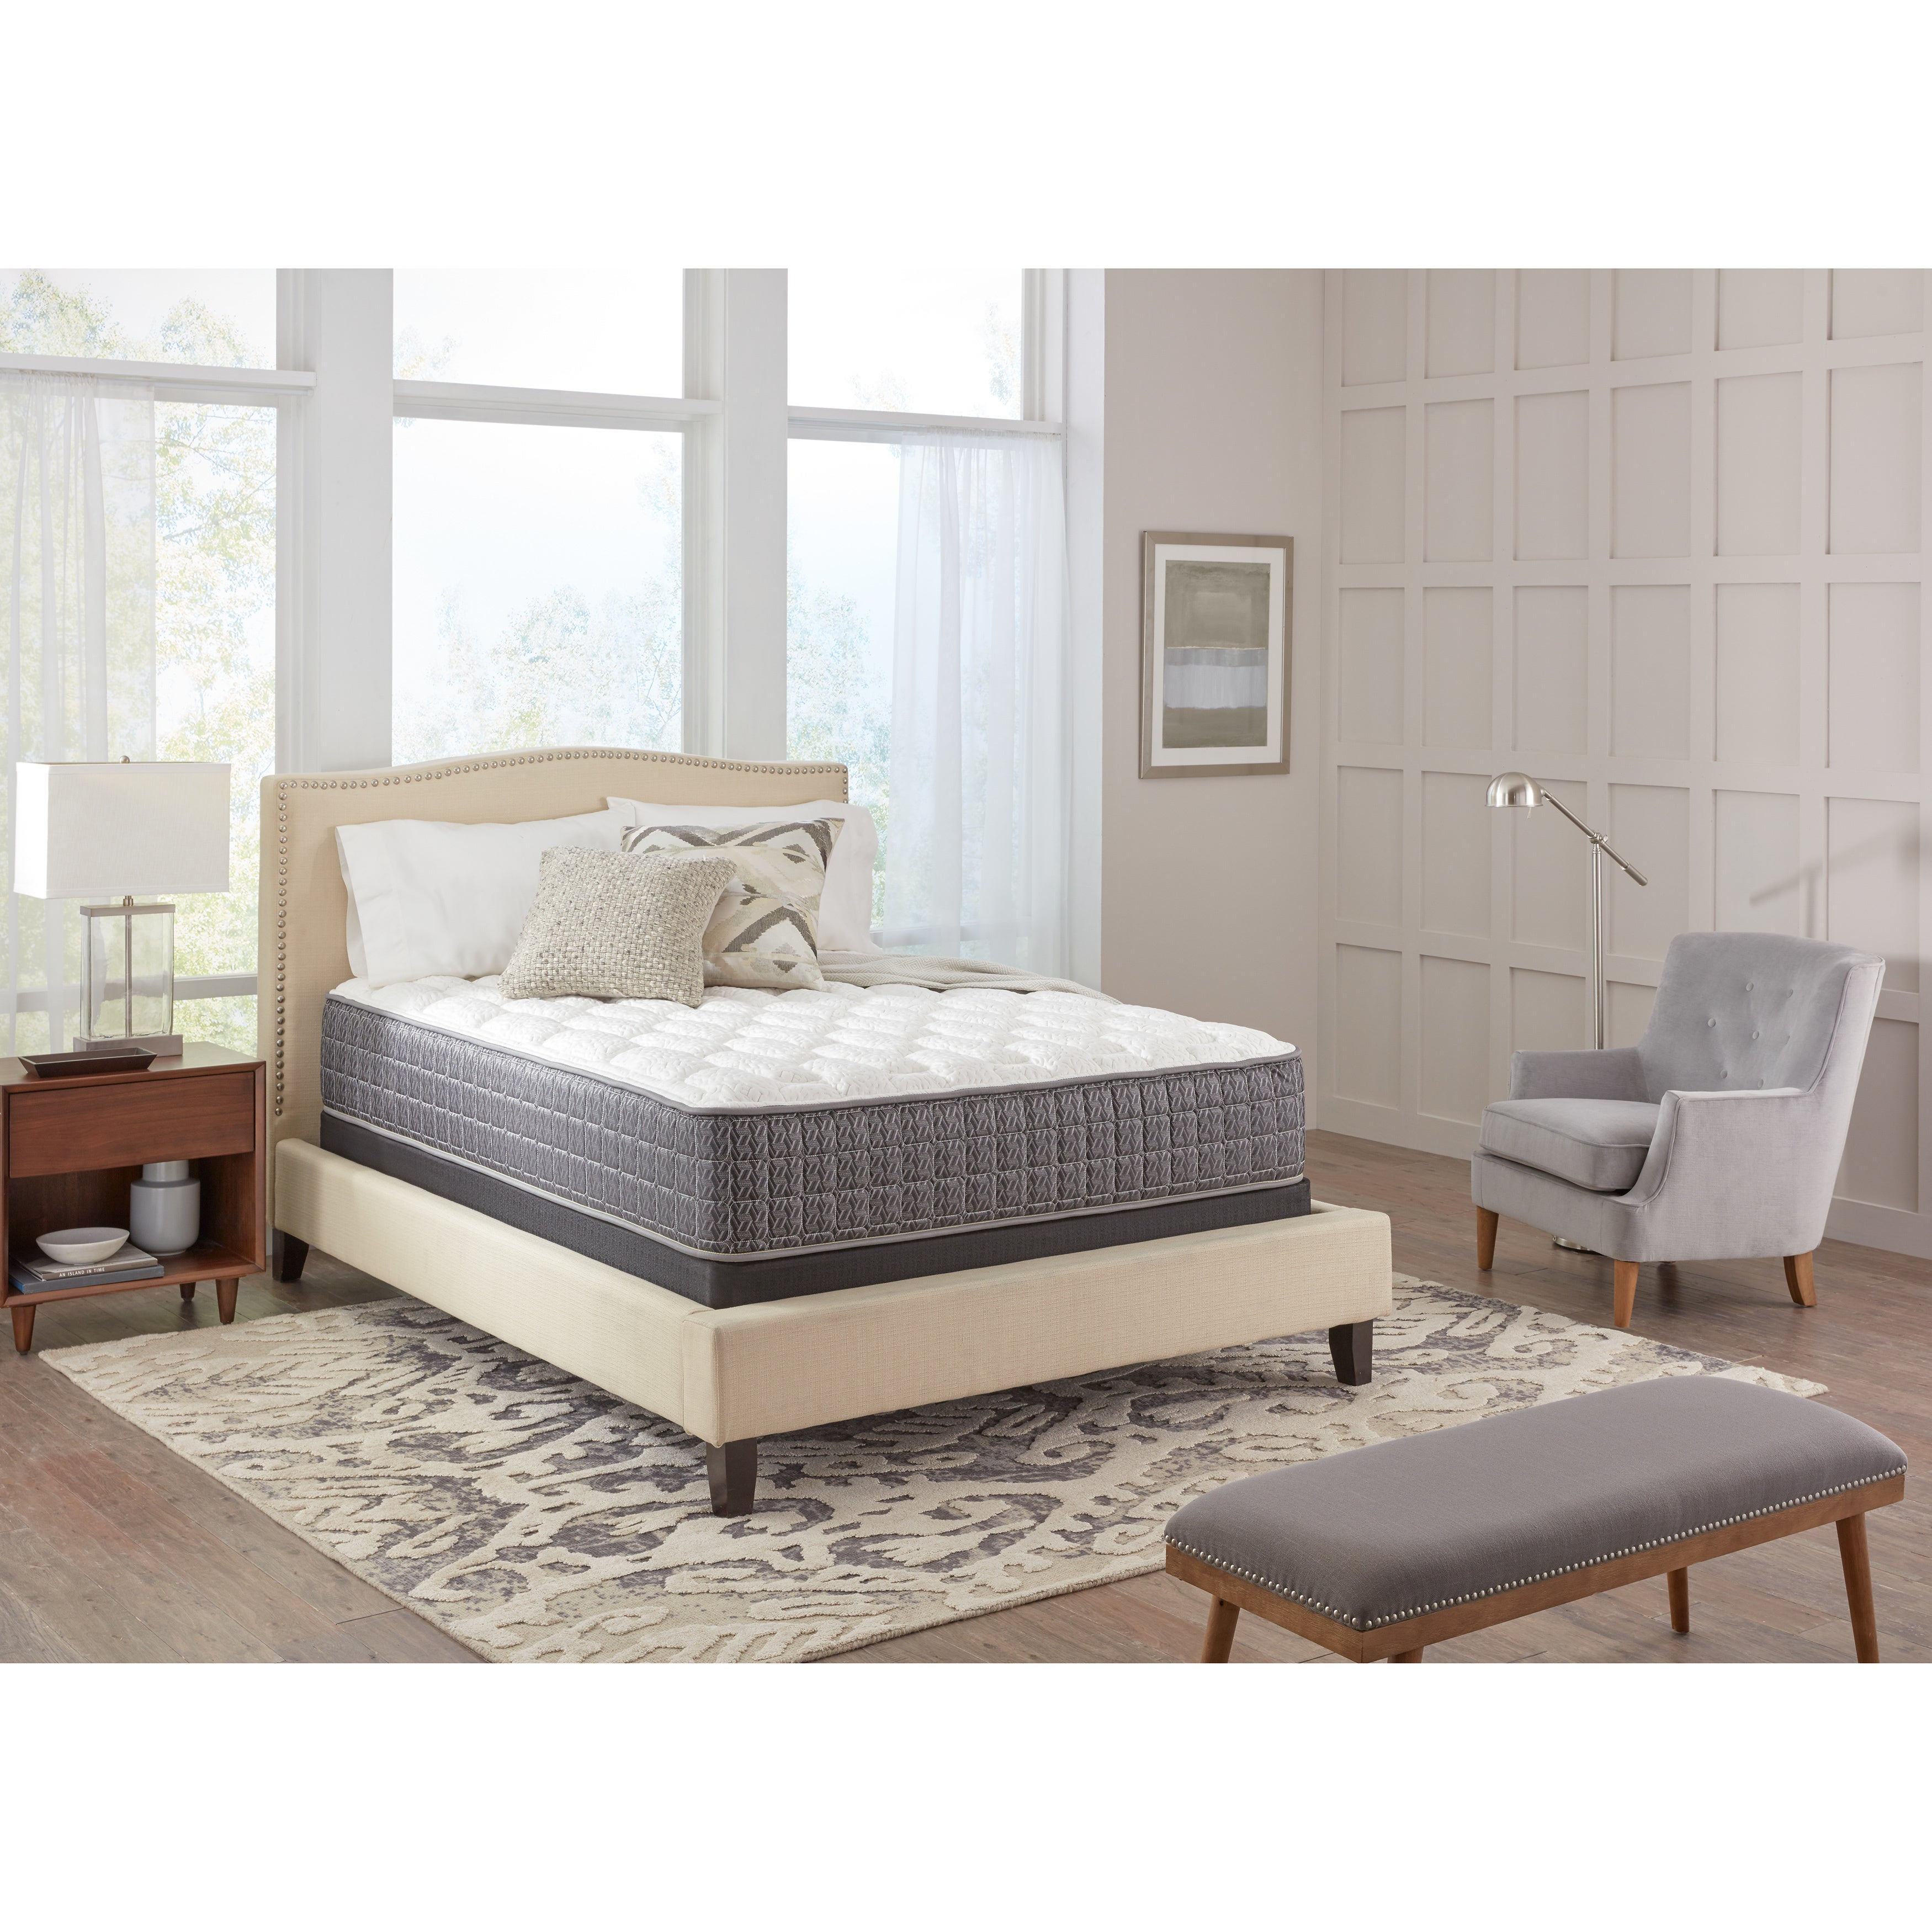 Spring Air Backsupporter Sadie Firm Twin-size Mattress Se...